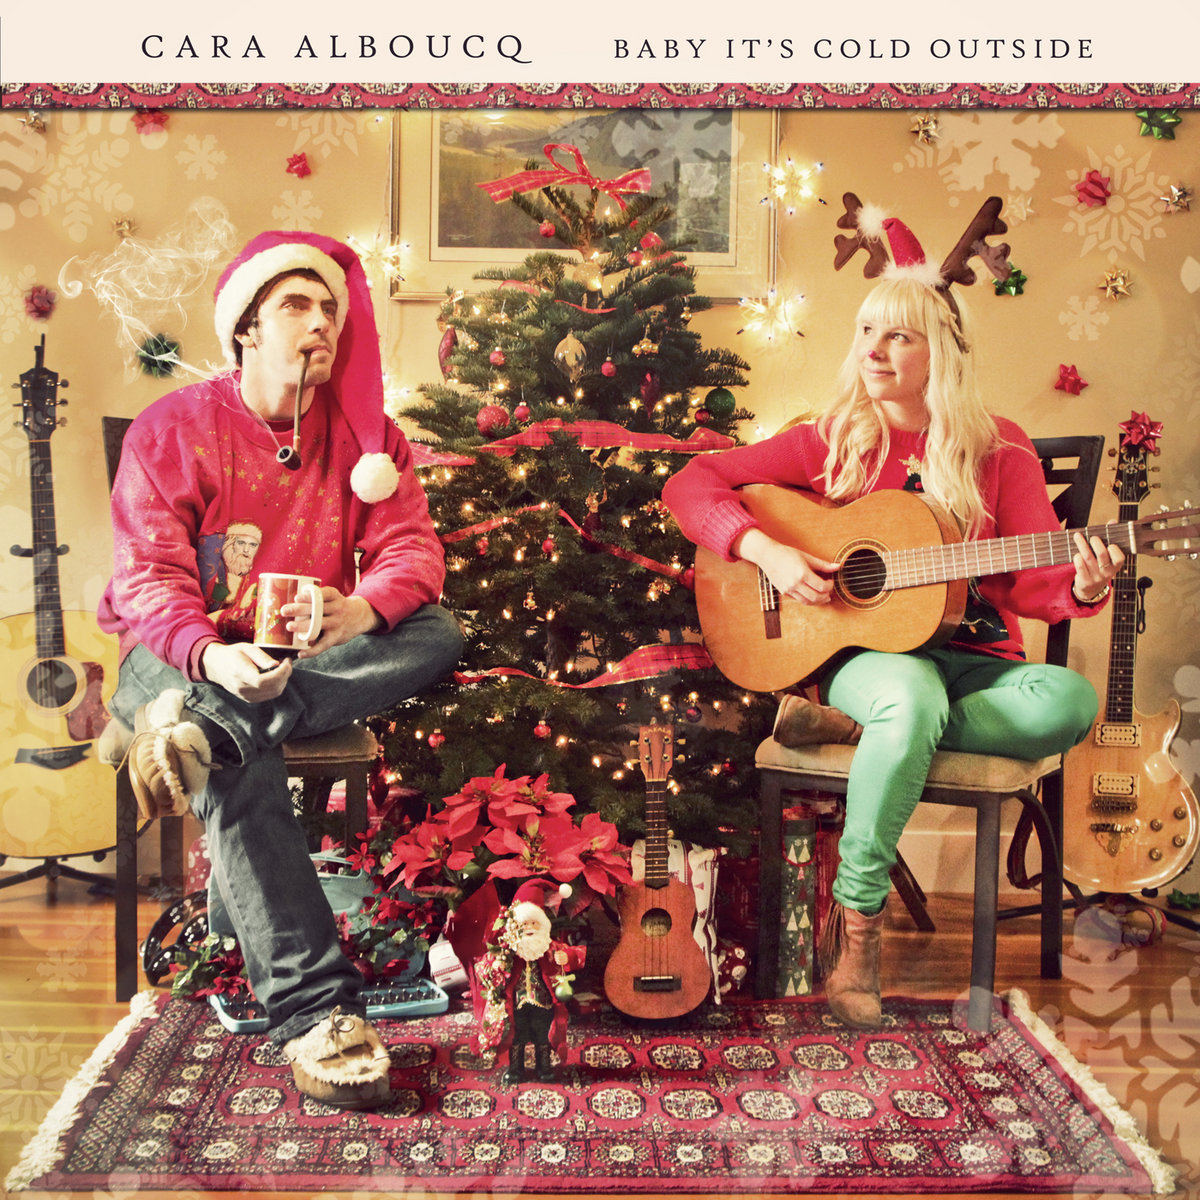 Please Come Home for Christmas. from Baby It's Cold Outside by Cara Alboucq